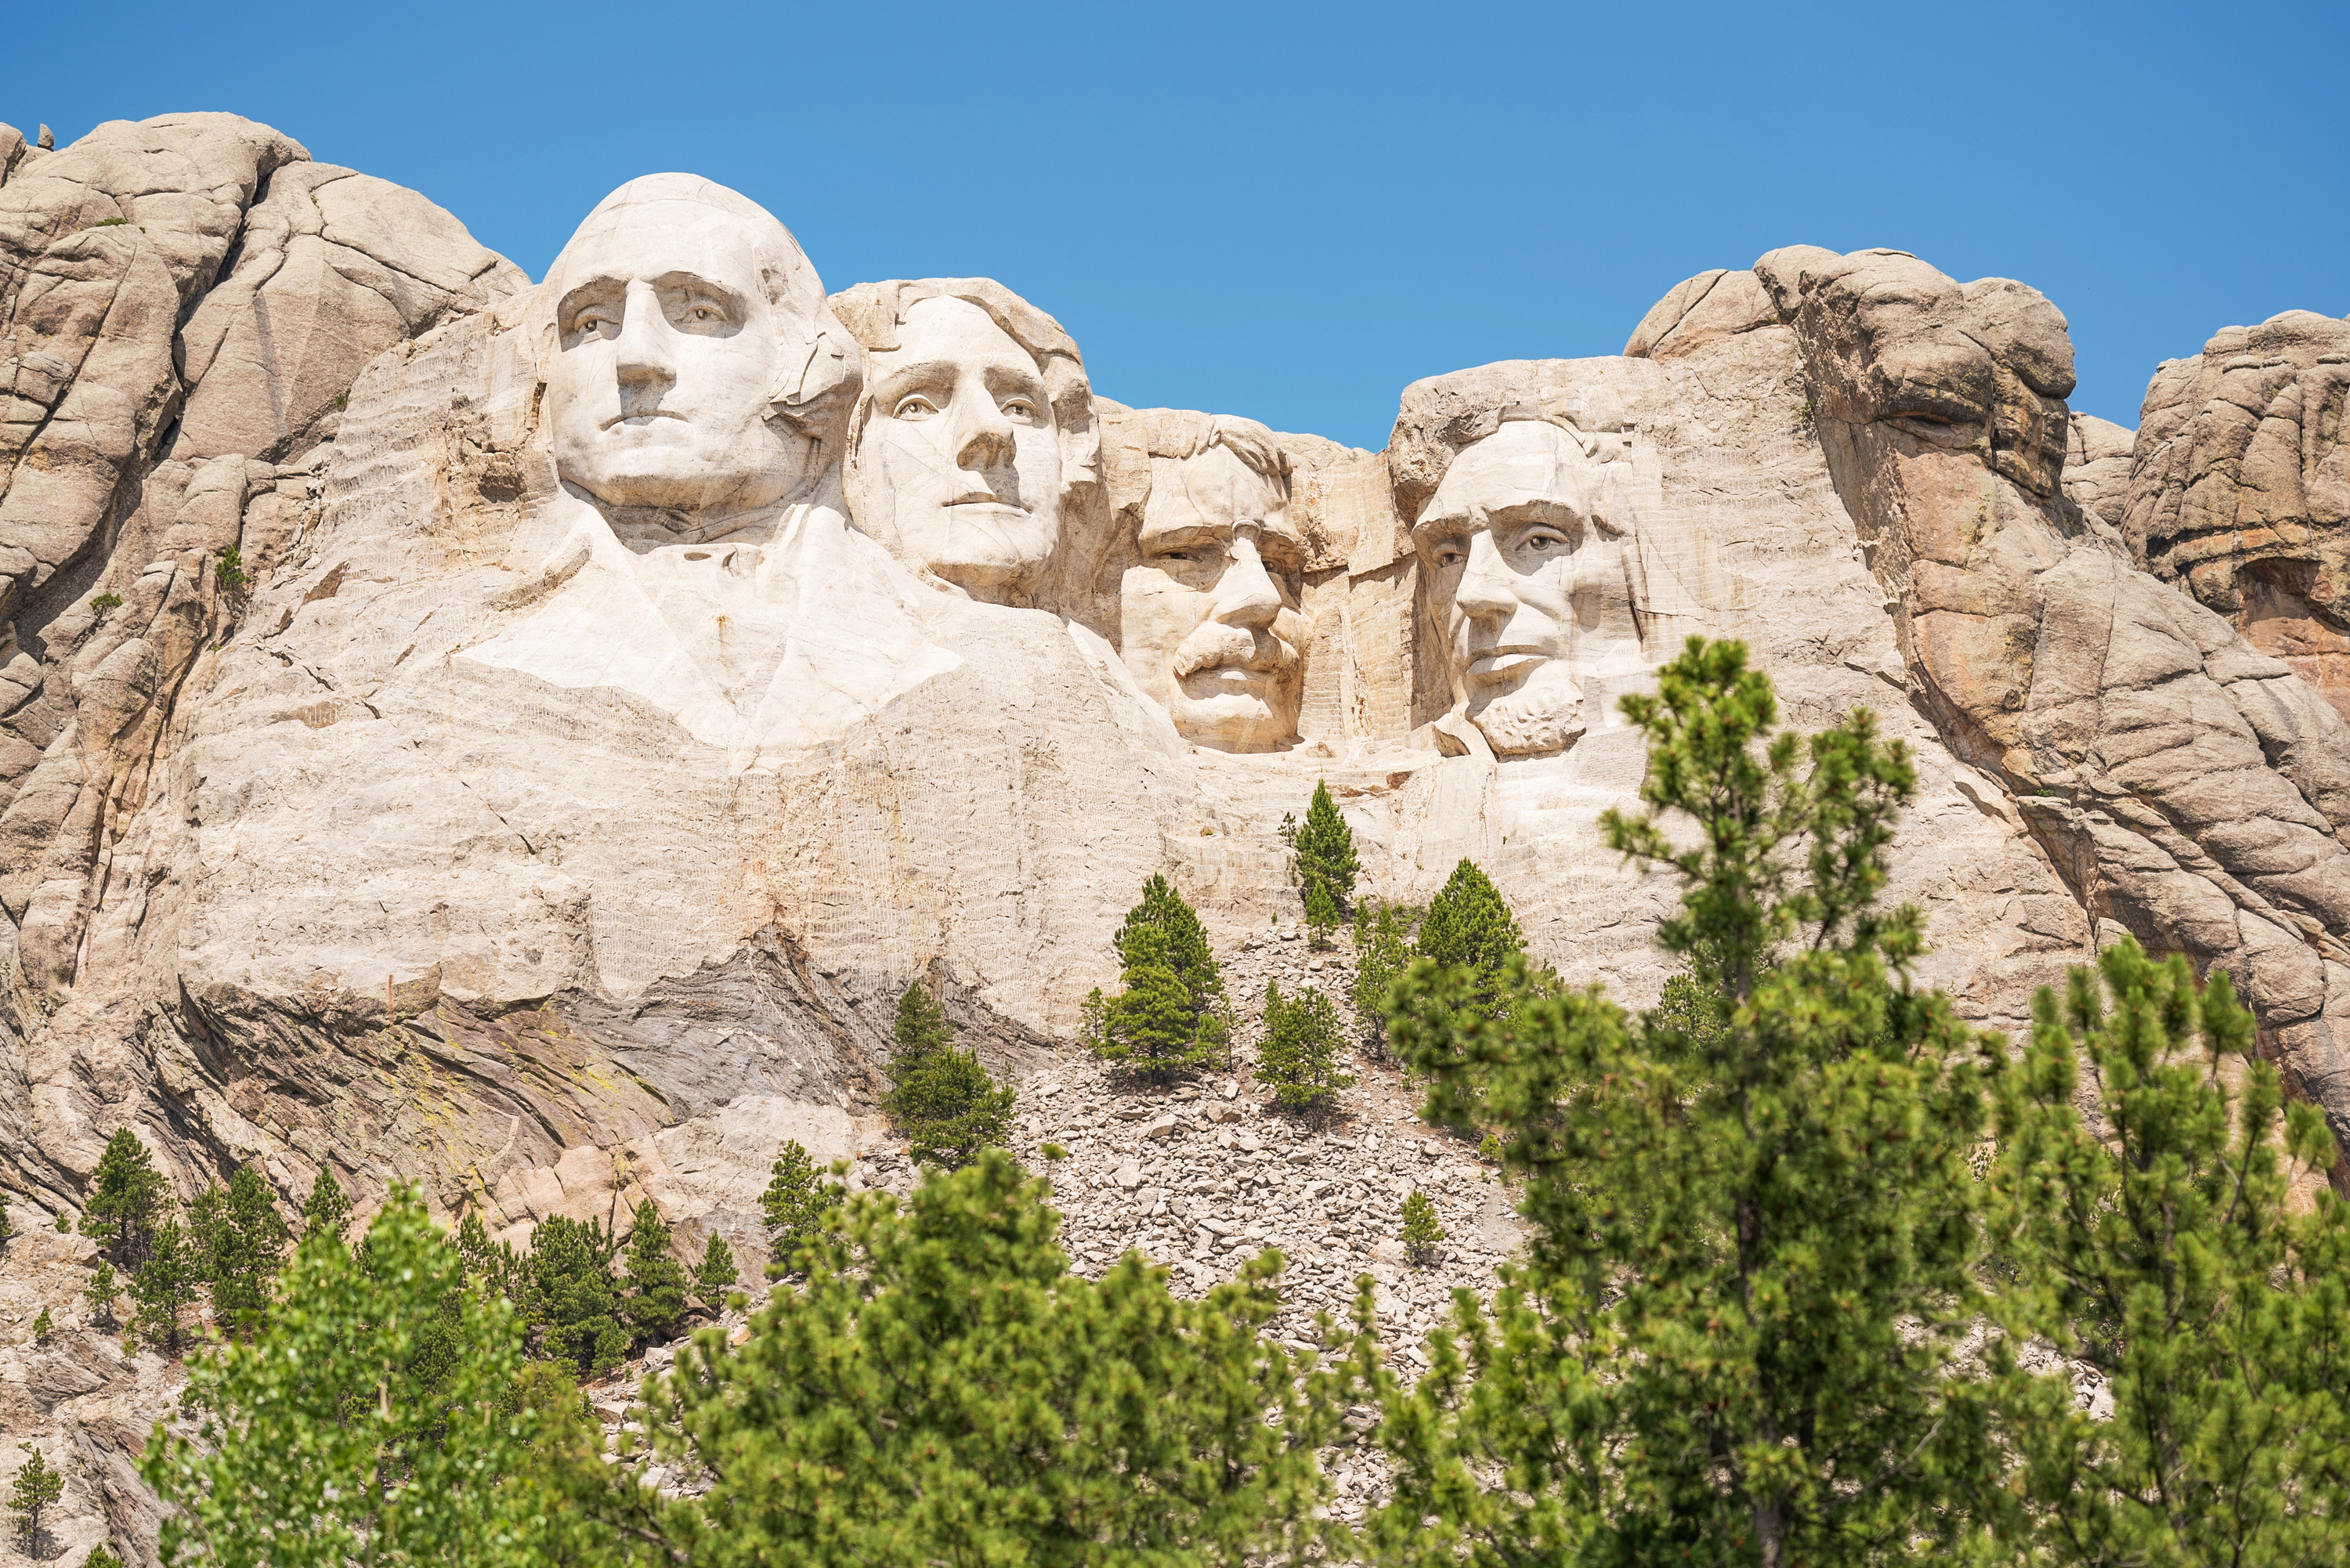 A sunny day at Mount Rushmore